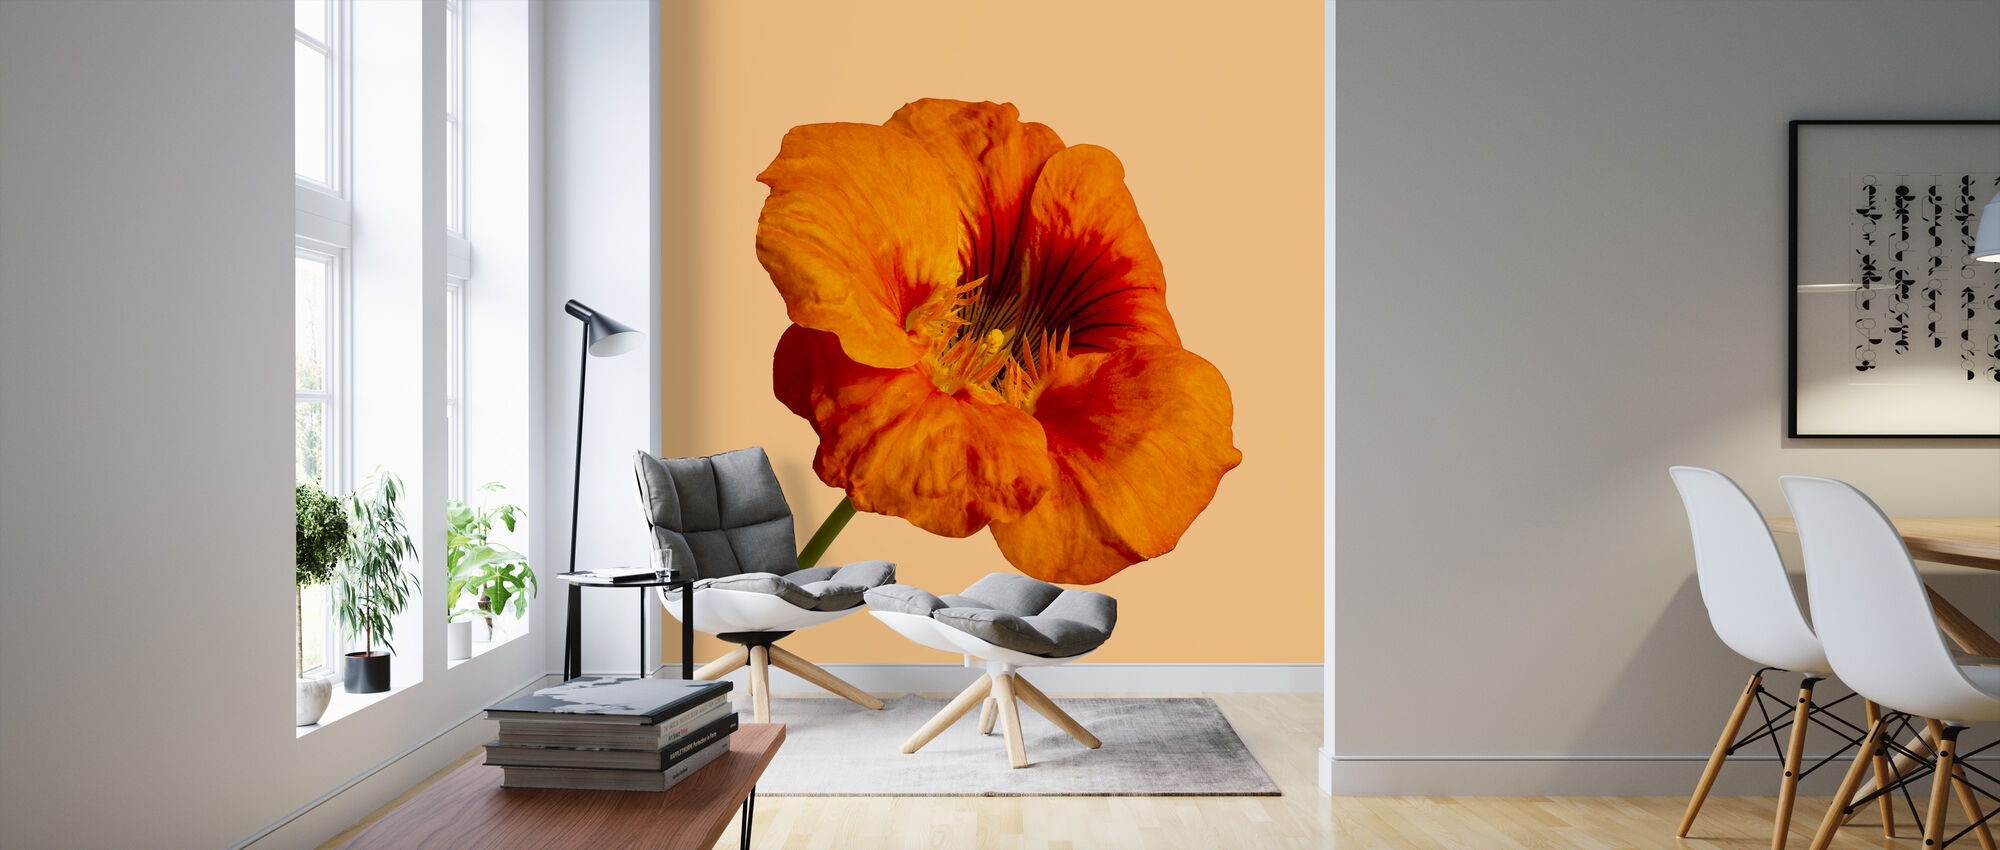 Blooming Hibiscus - Wallpaper - Living Room